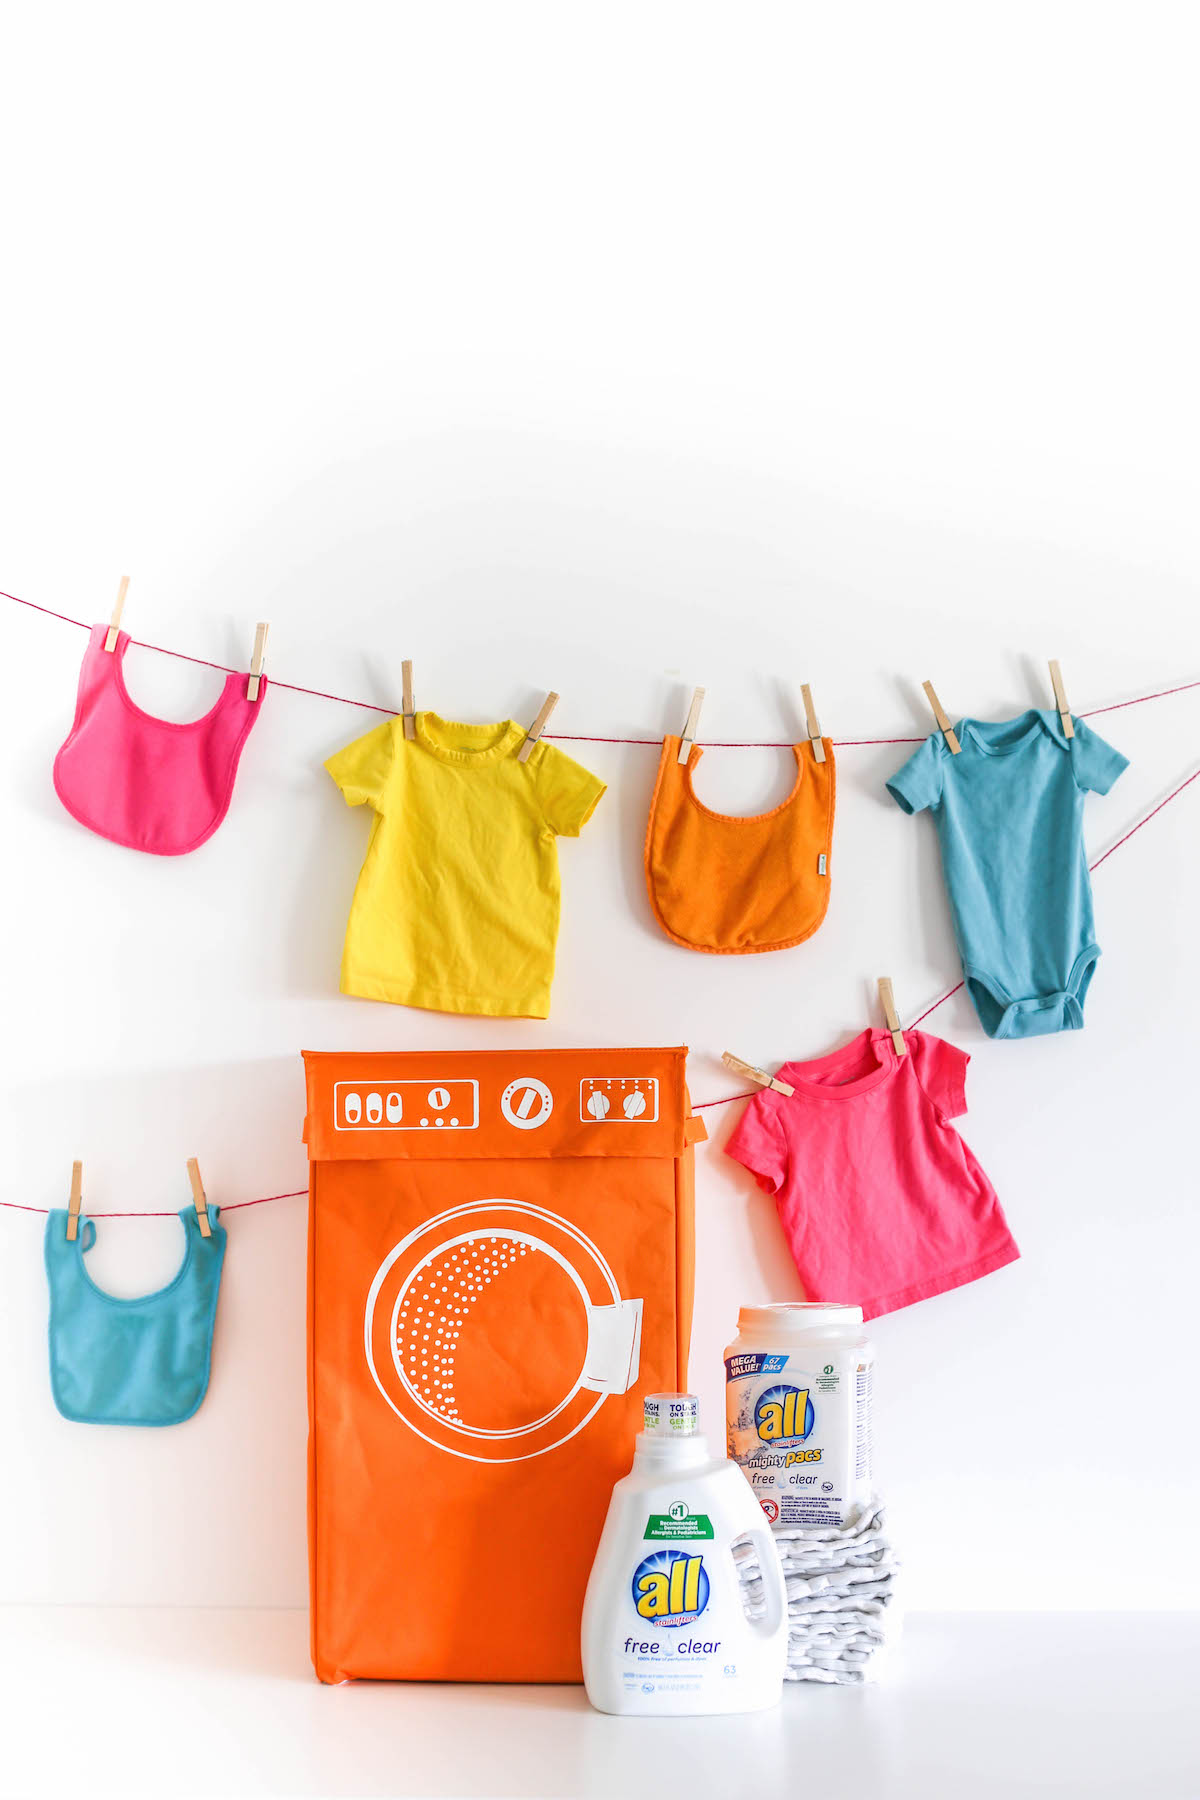 Baby clothes hanging on rope with a hamper and laundry detergent